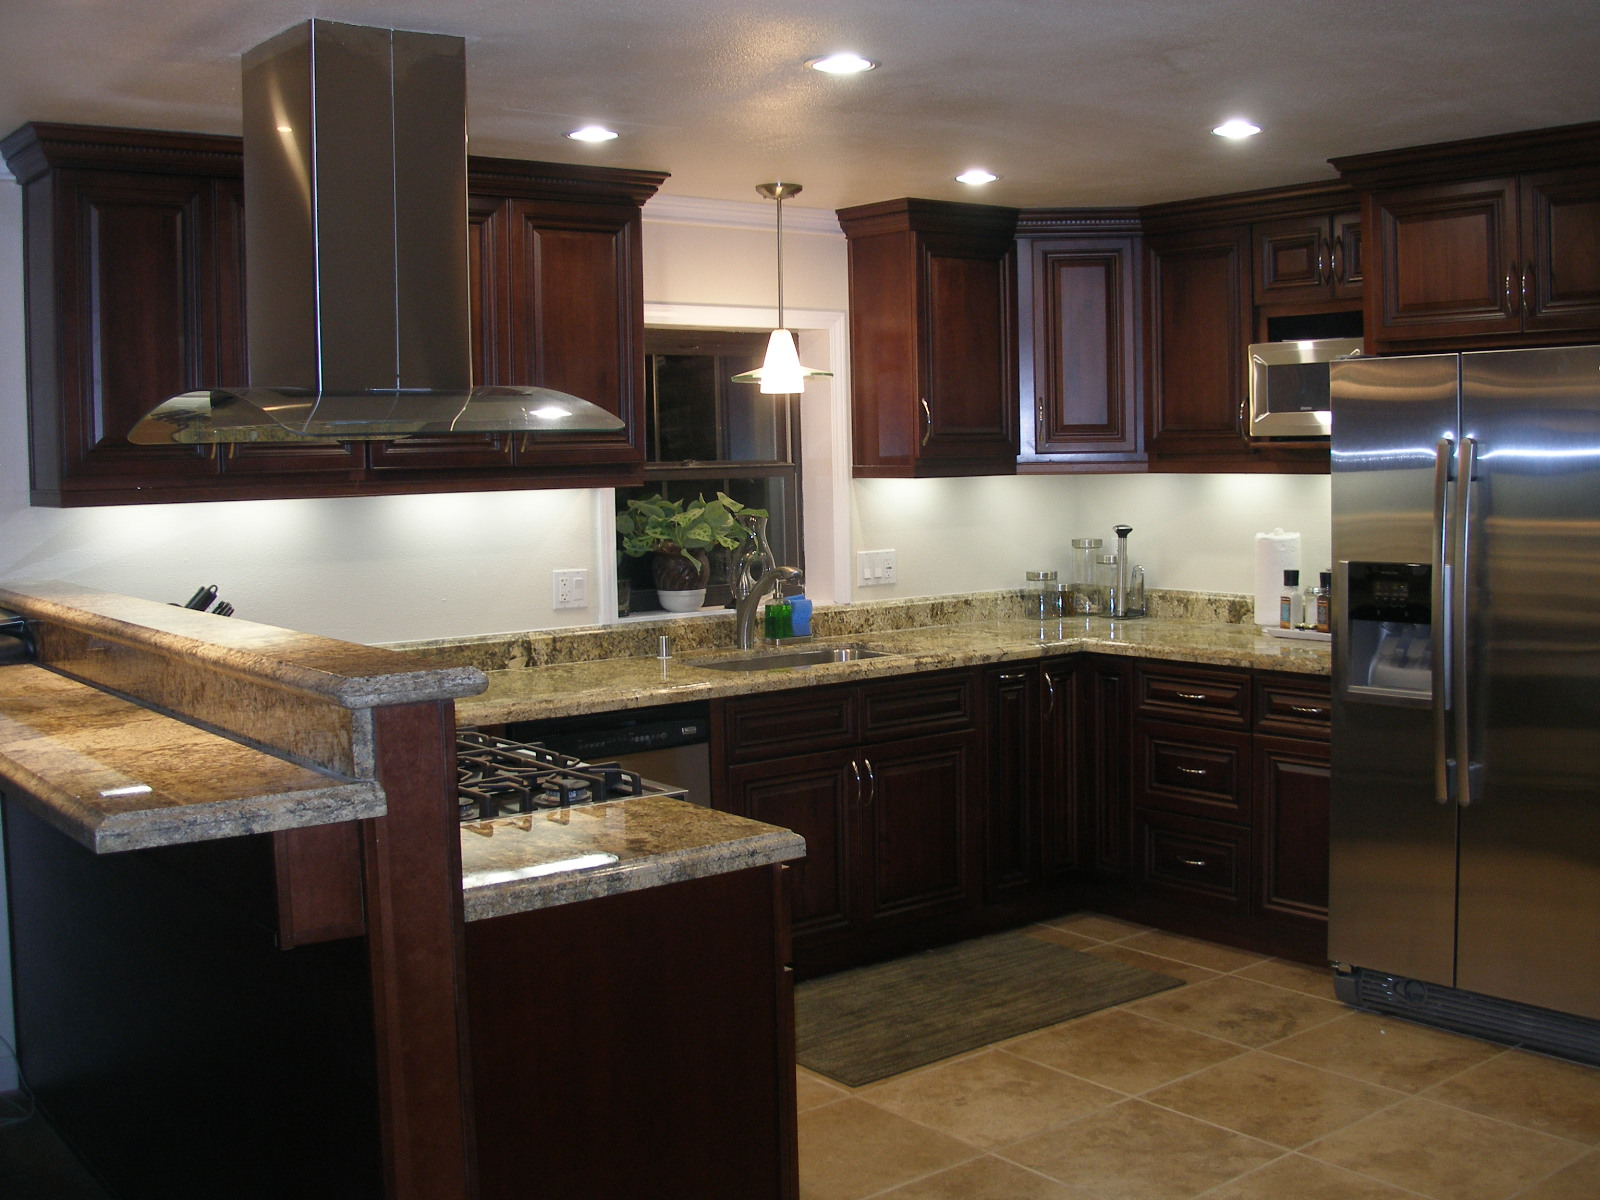 Kitchen remodeling brad t jones construction for Renovations kitchen ideas